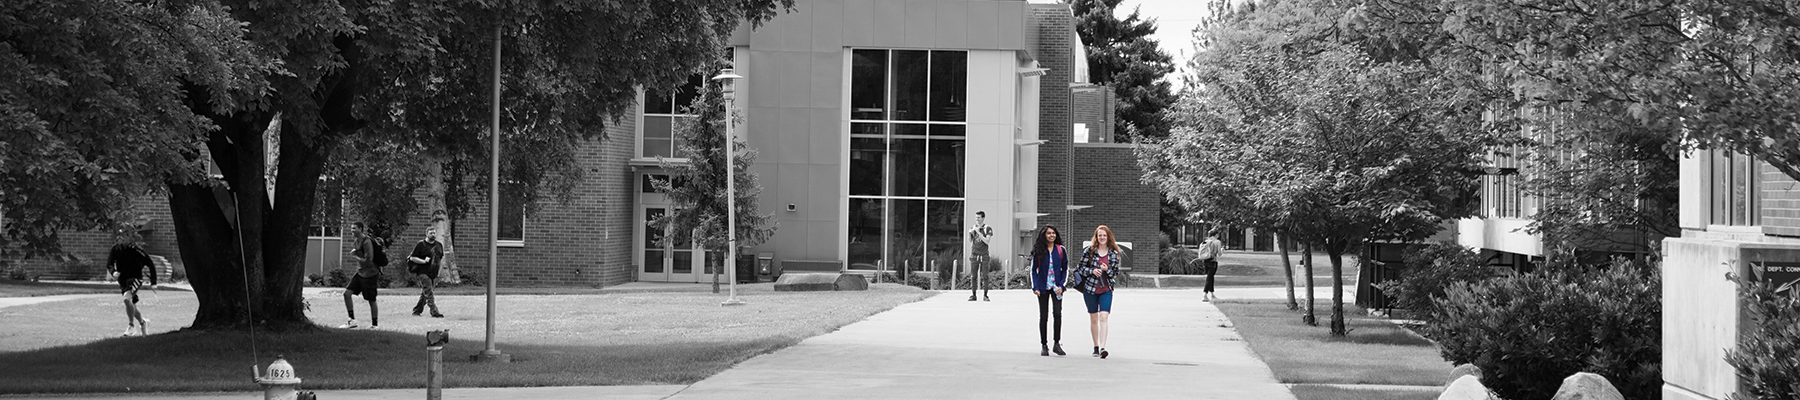 Two female students walking to class at SFCC's campus. Photo is in black and white while the students are in color.